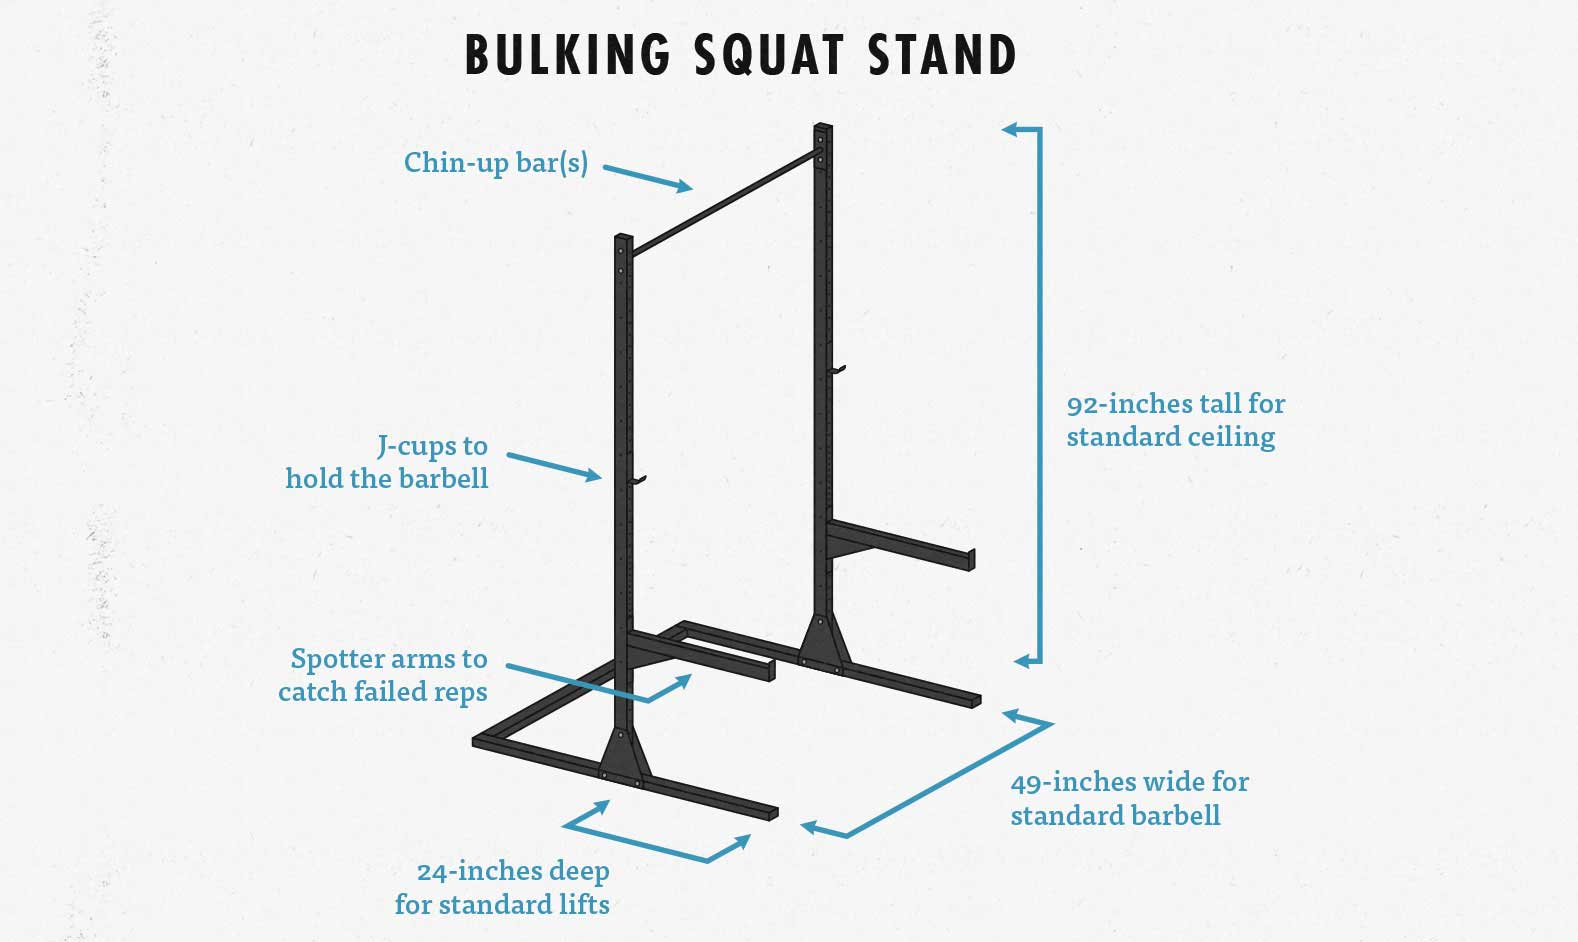 What's the best squat stand to buy for a barbell home gym for building muscle?